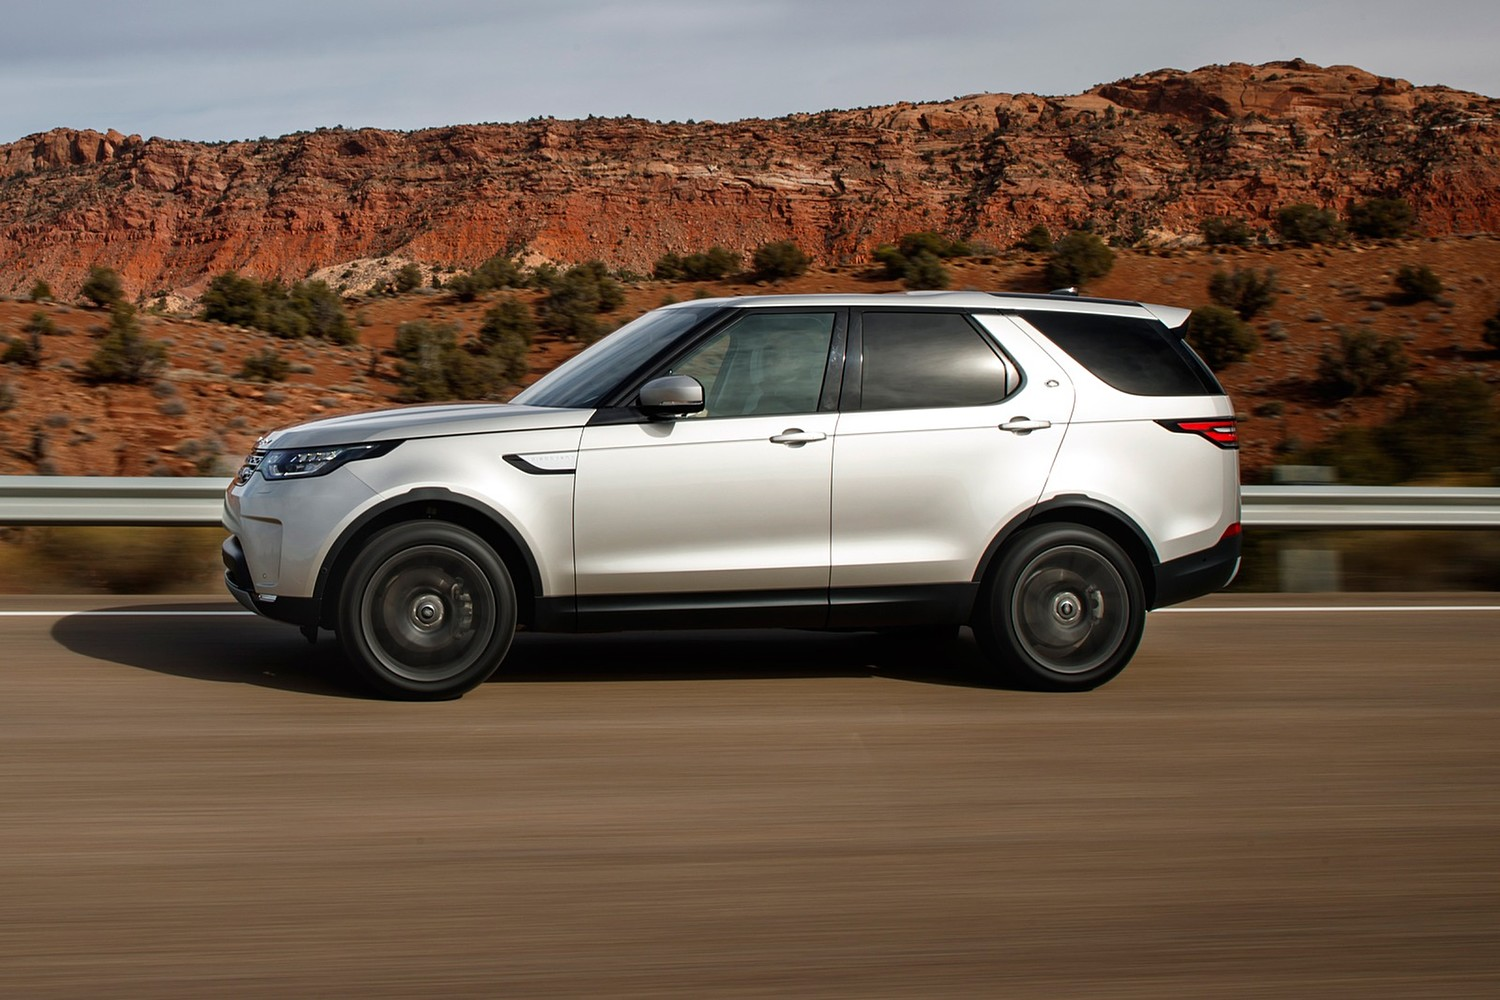 2018 Land Rover Discovery HSE Td6 4dr SUV Profile. Options Shown.